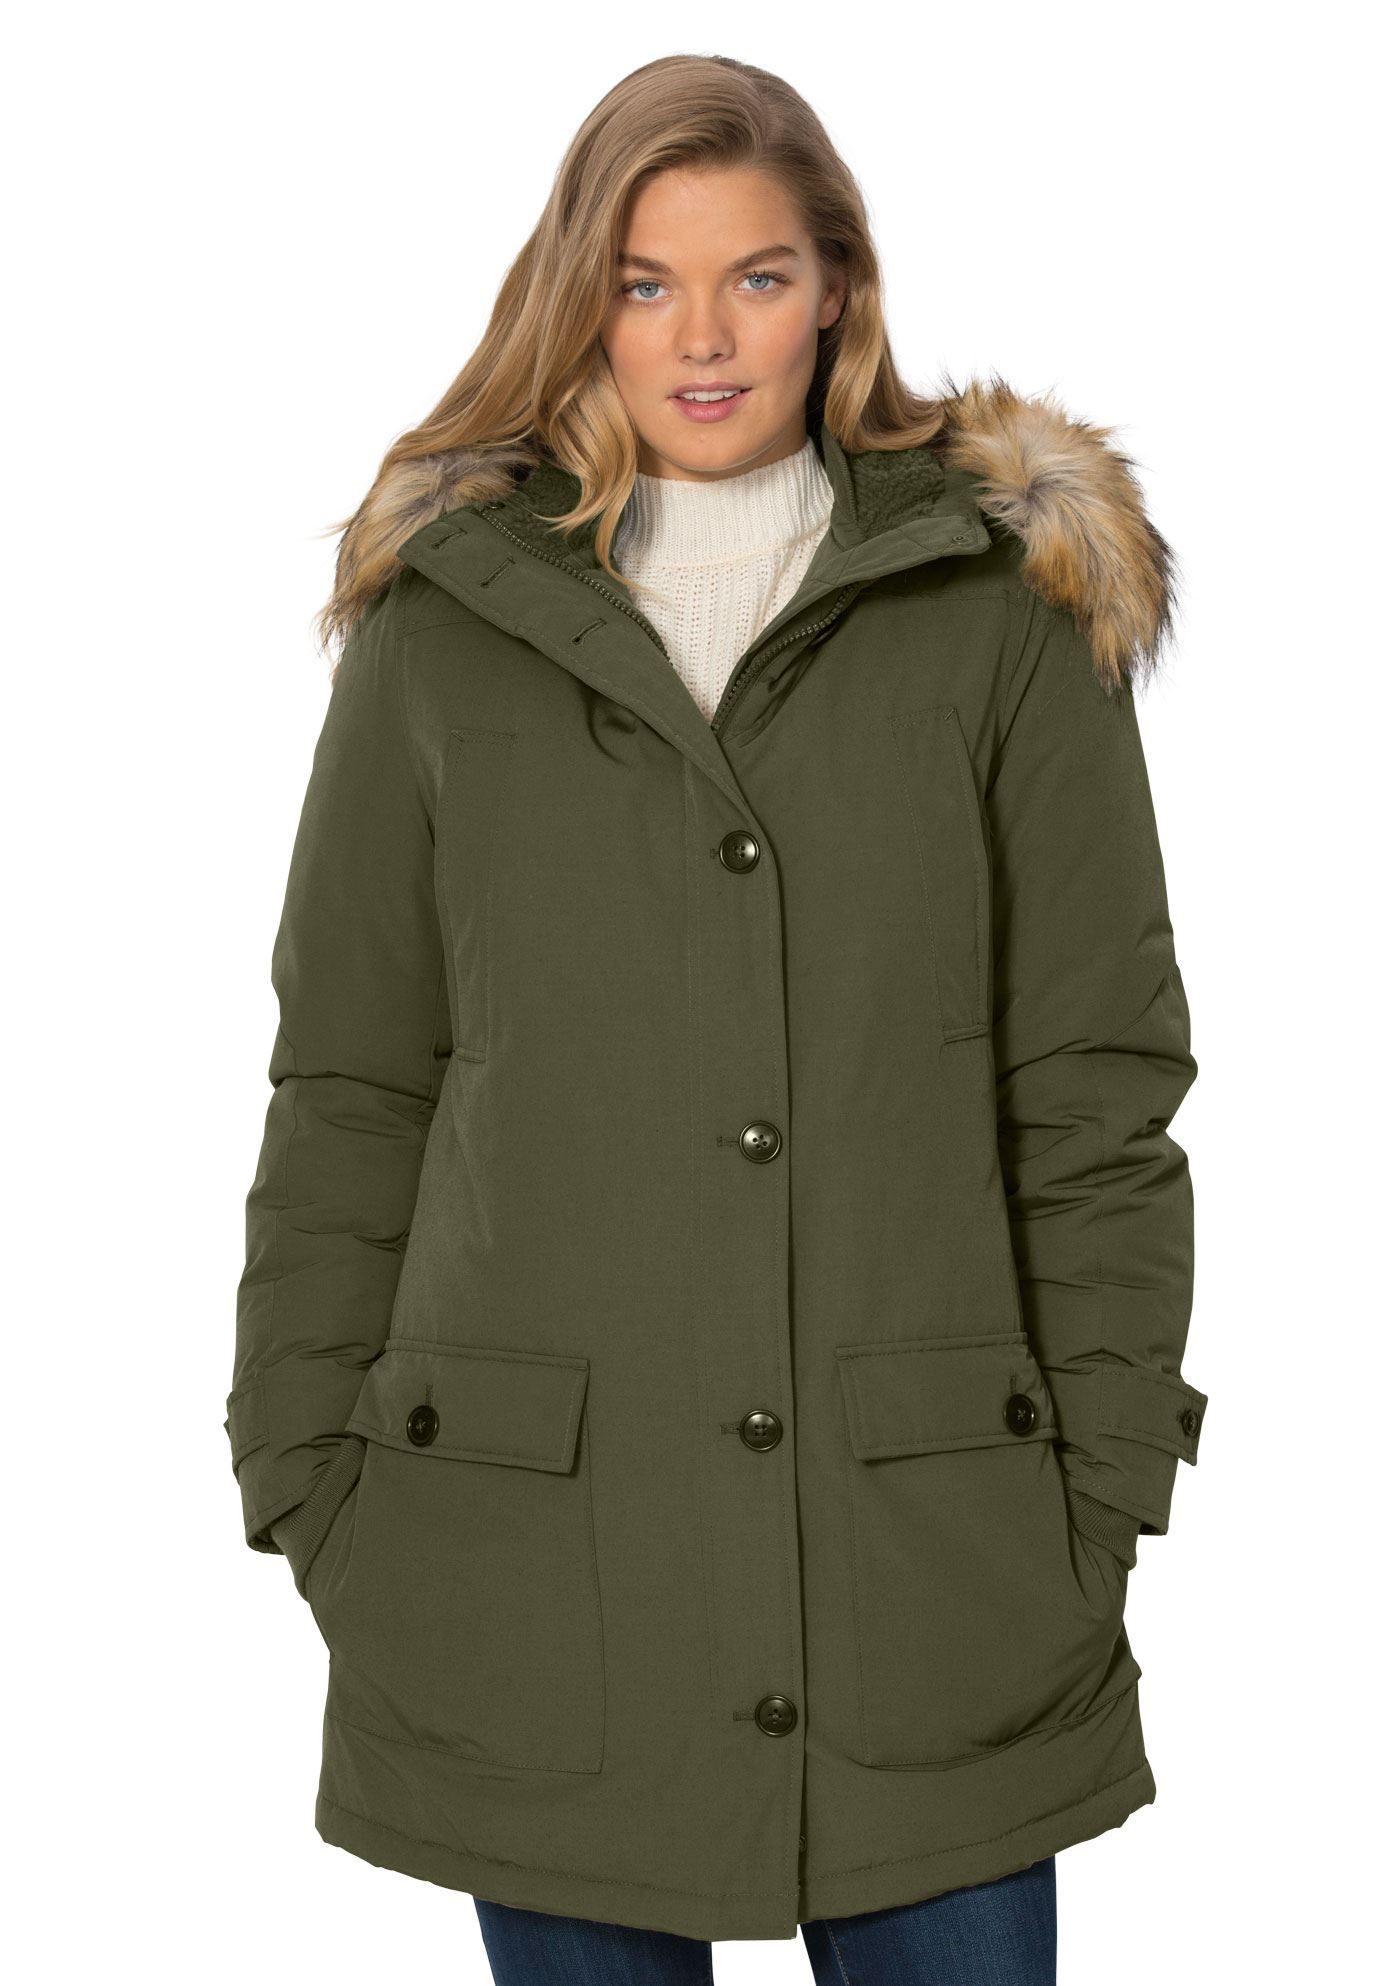 67486f62bd7 The Arctic Parka by Woman Within - Women s Plus Size Clothing ...